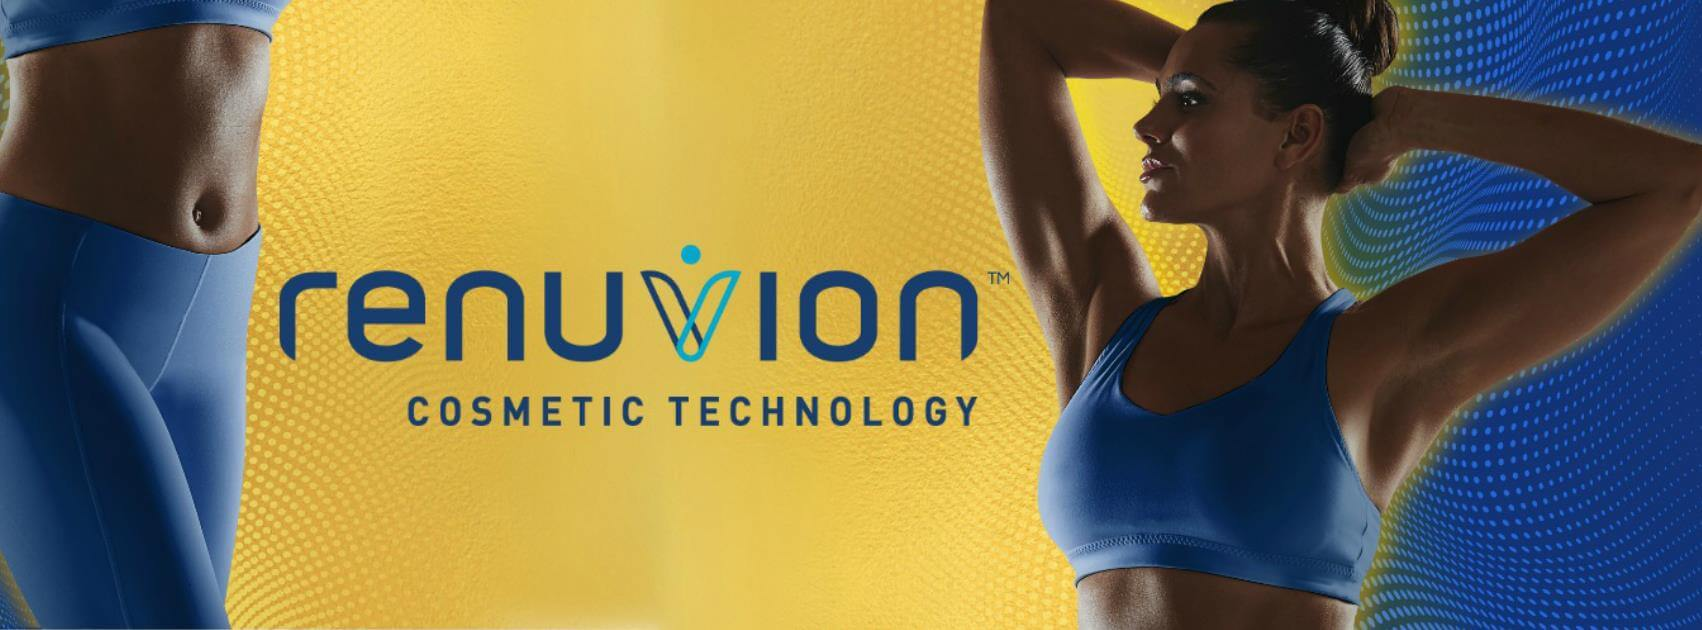 RENUVION FOR SKIN TIGHTENING - Renuvion tightens skin and enhances liposuction resut